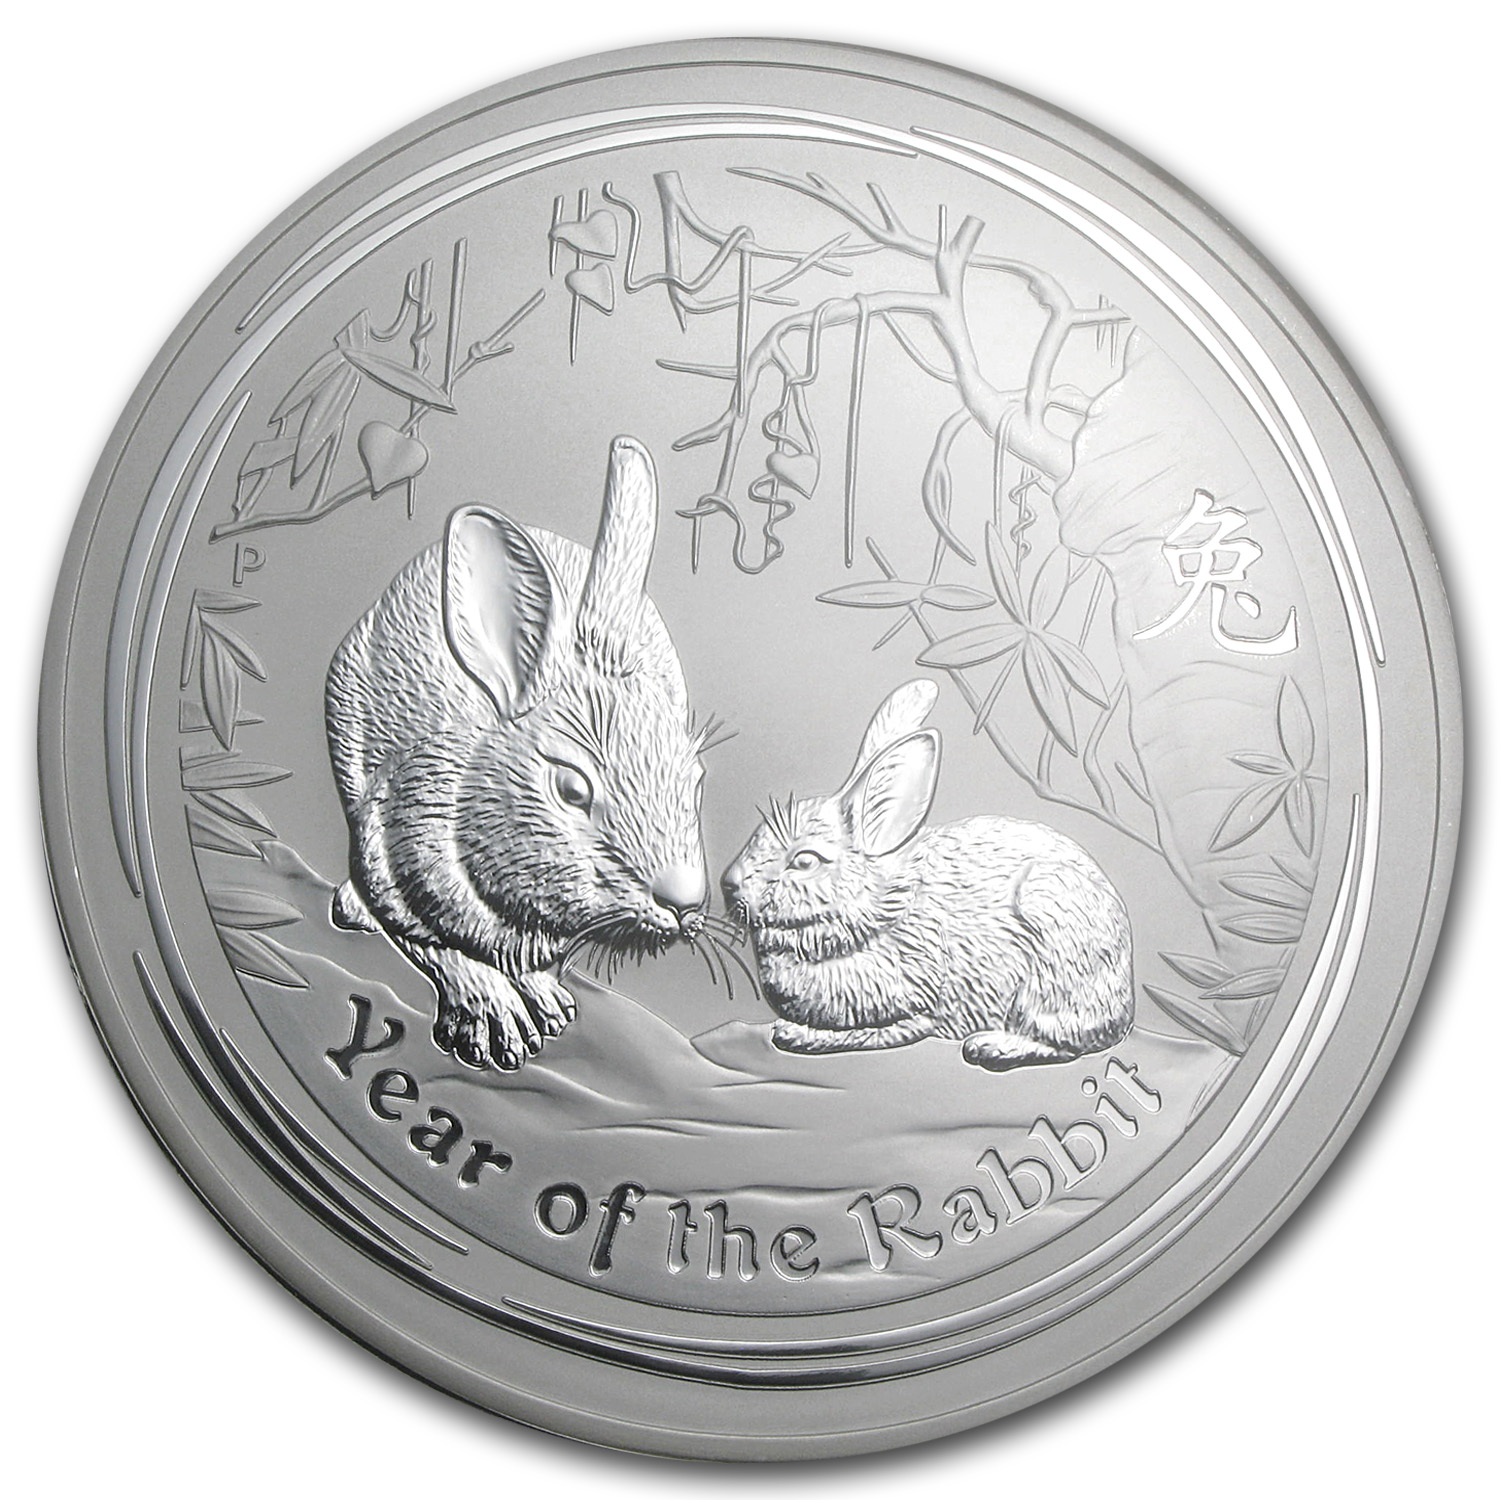 2011 Australia 1 kilo Silver Year of the Rabbit MS-70 NGC